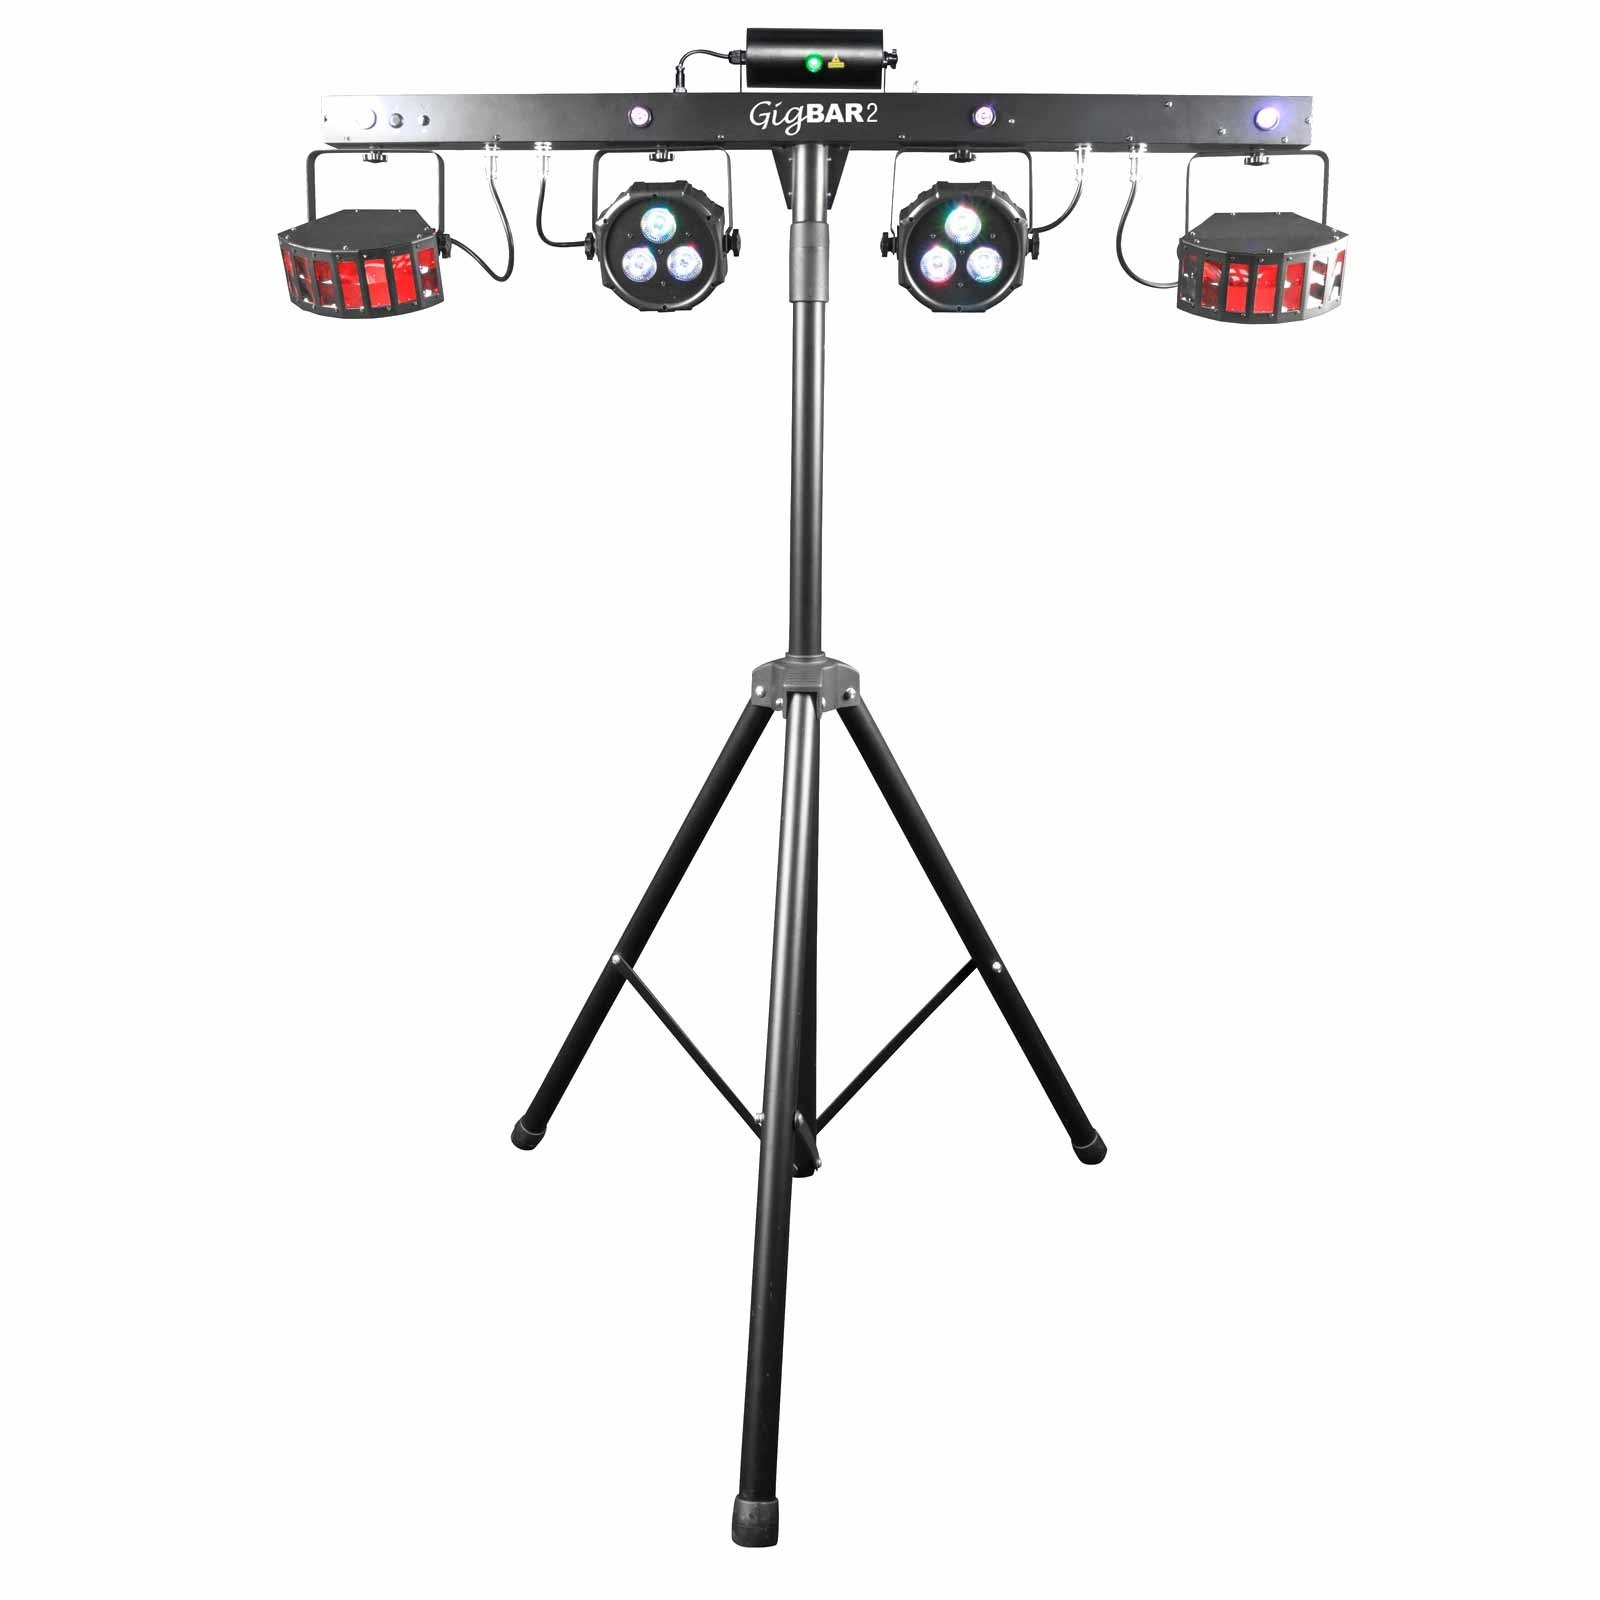 Chauvet Dj Lighting Gigbar 2 Multi Effect 4 In 1 Led Light W Fog Machine New